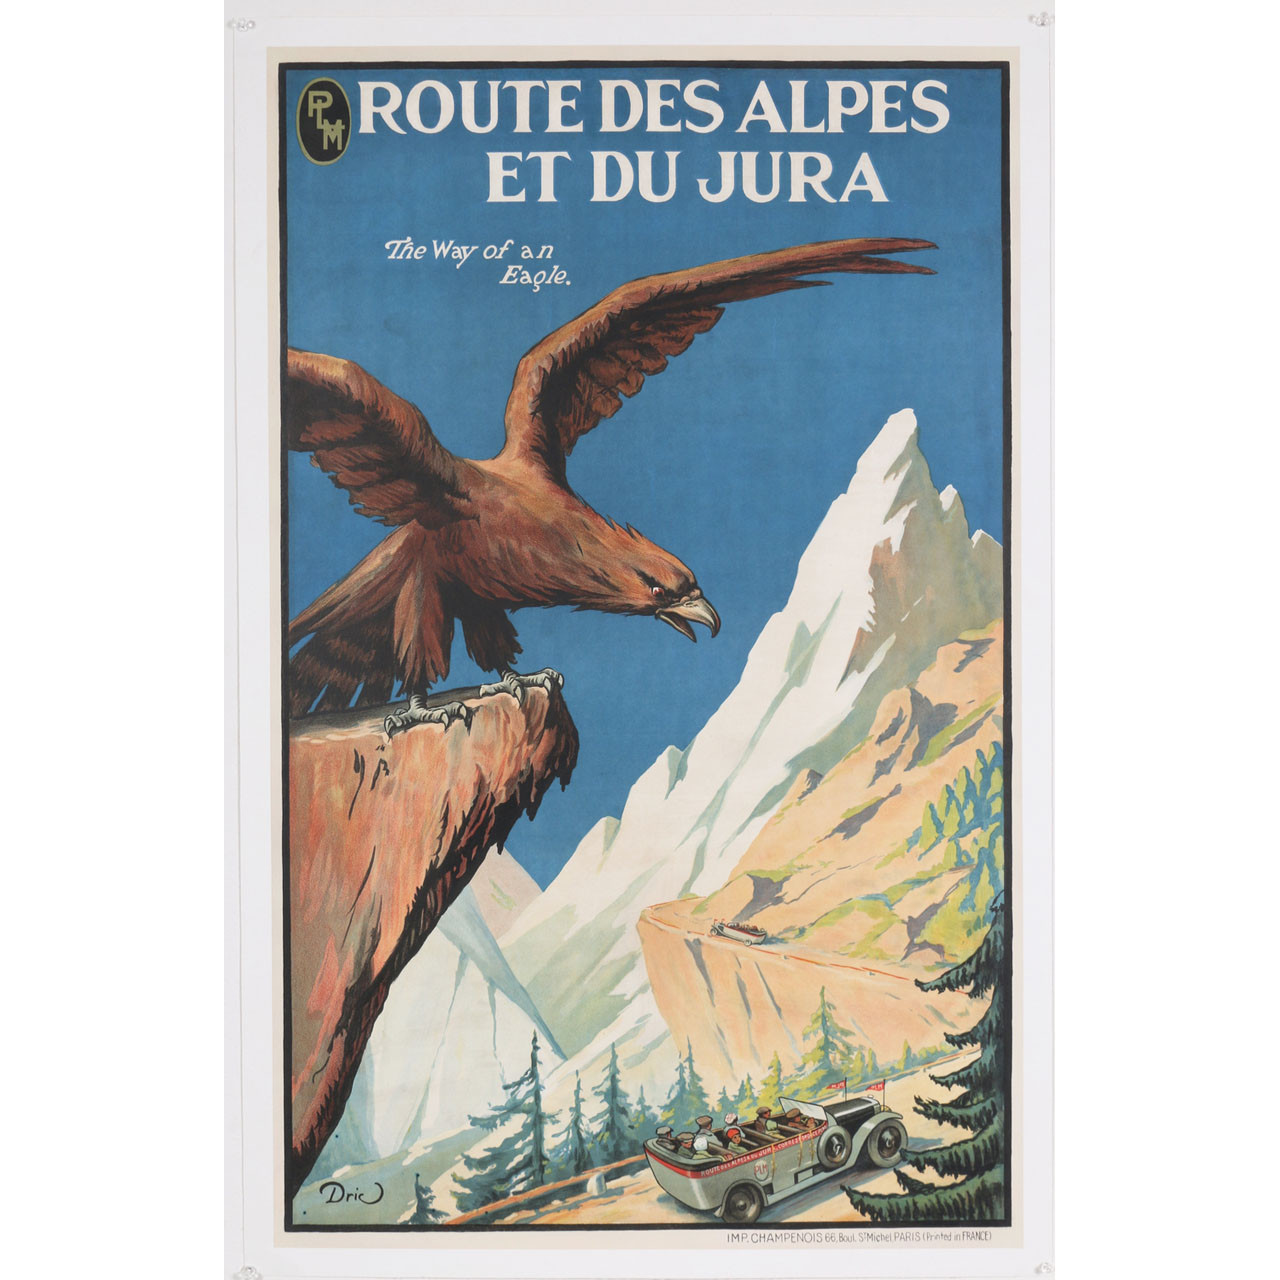 Original Vintage PLM Railway Travel Poster Route des Alpes et du Jura 1920s